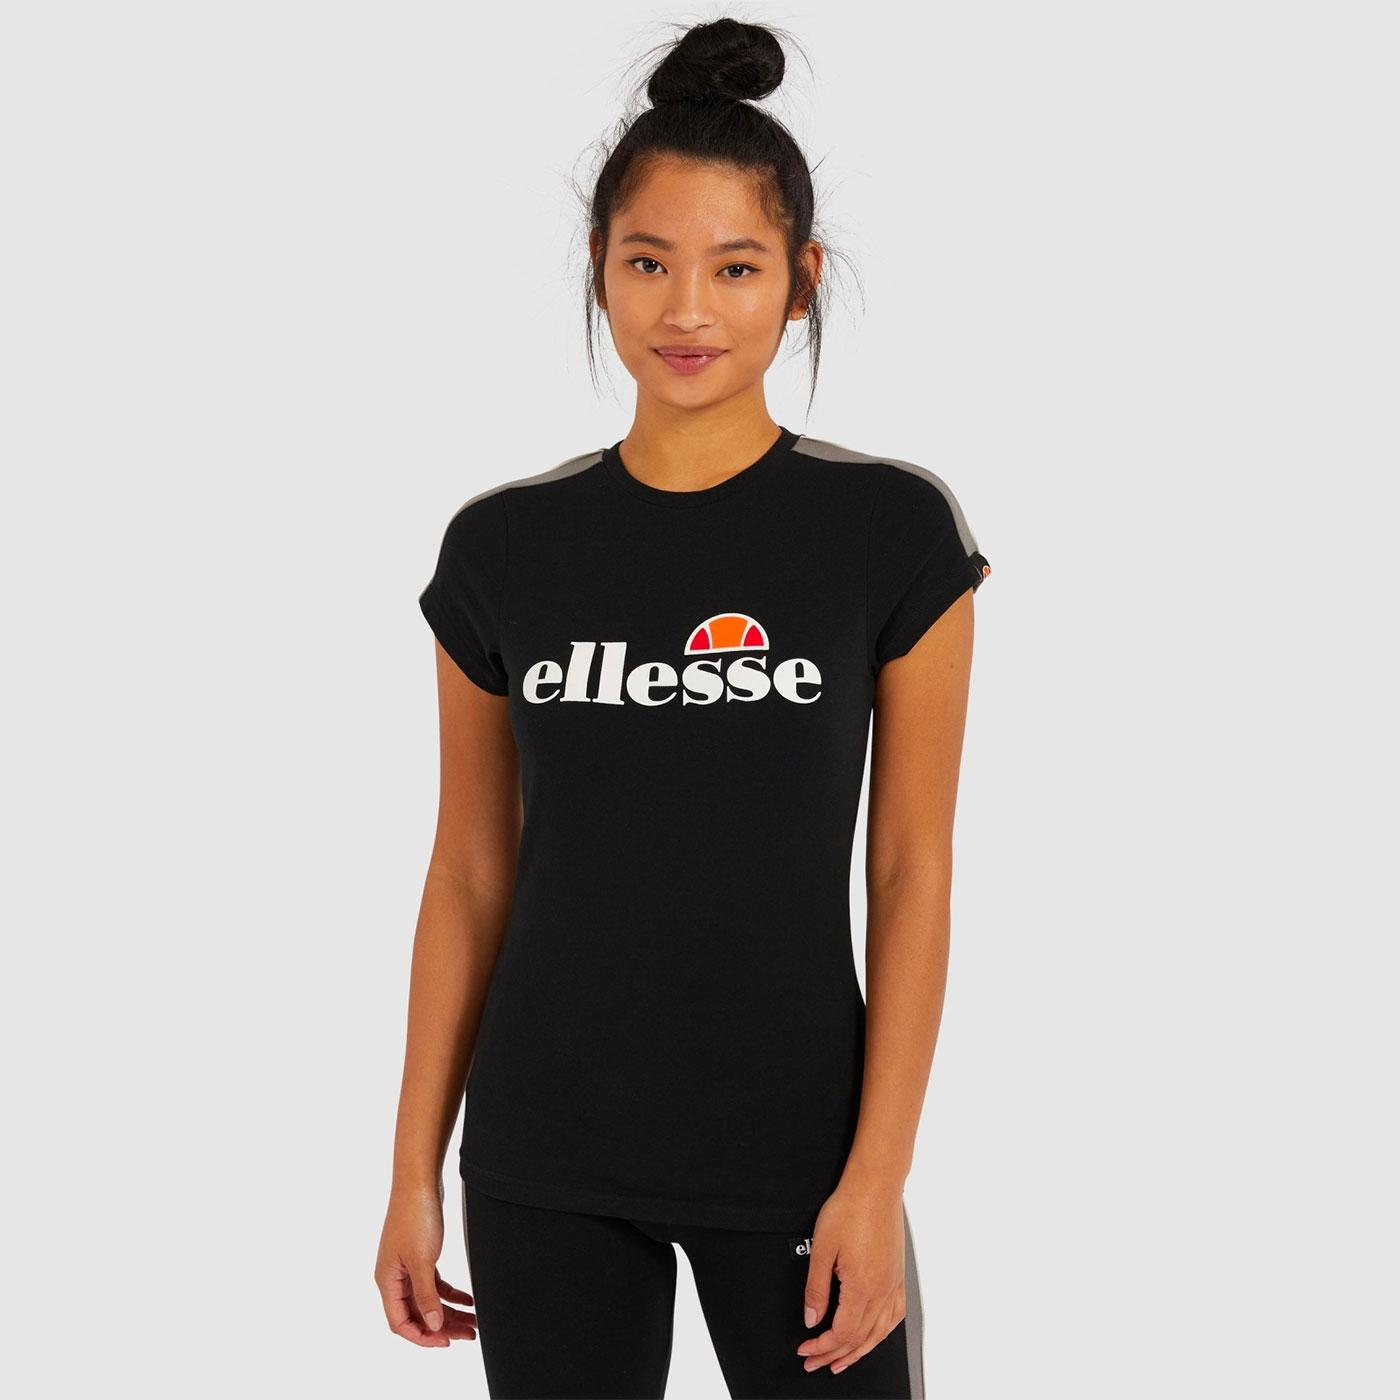 Malis ELLESSE Women's Retro Jet Stripe Fitted Tee